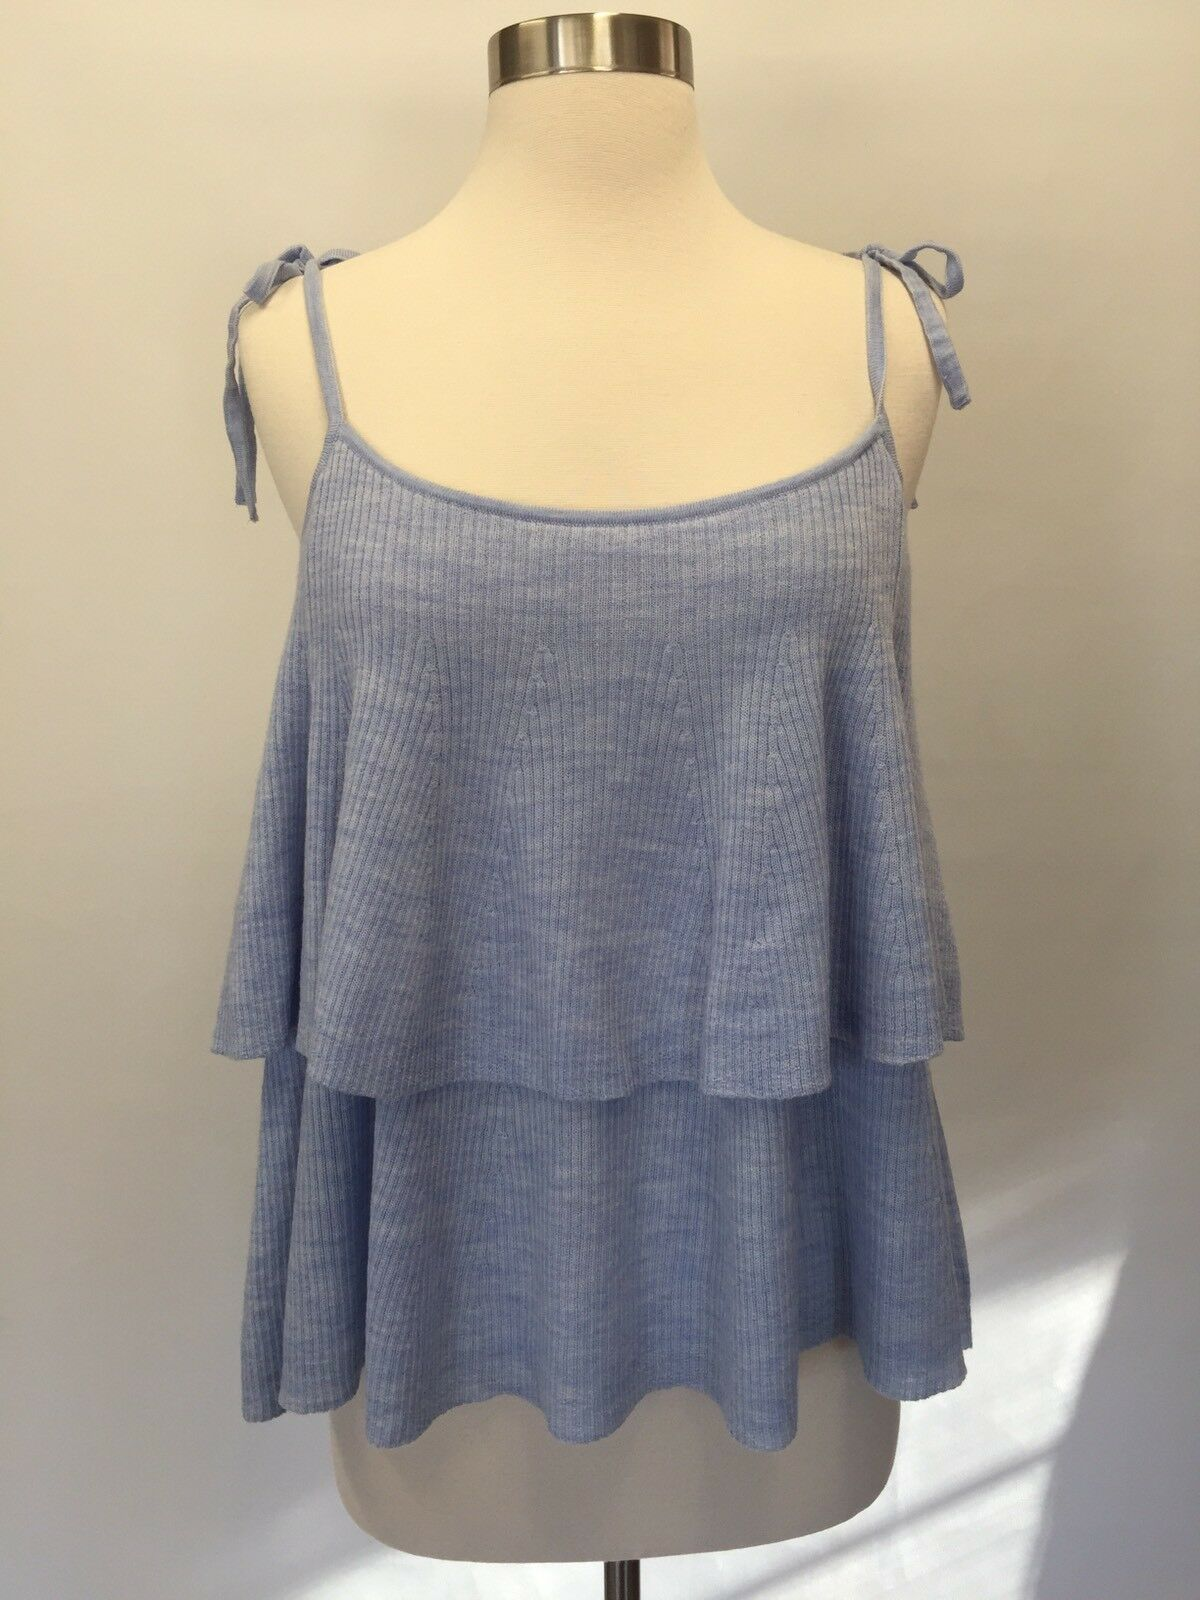 New J Crew Tierot Top in Merino Wool Hthr Breeze Sz XL Blau G5694